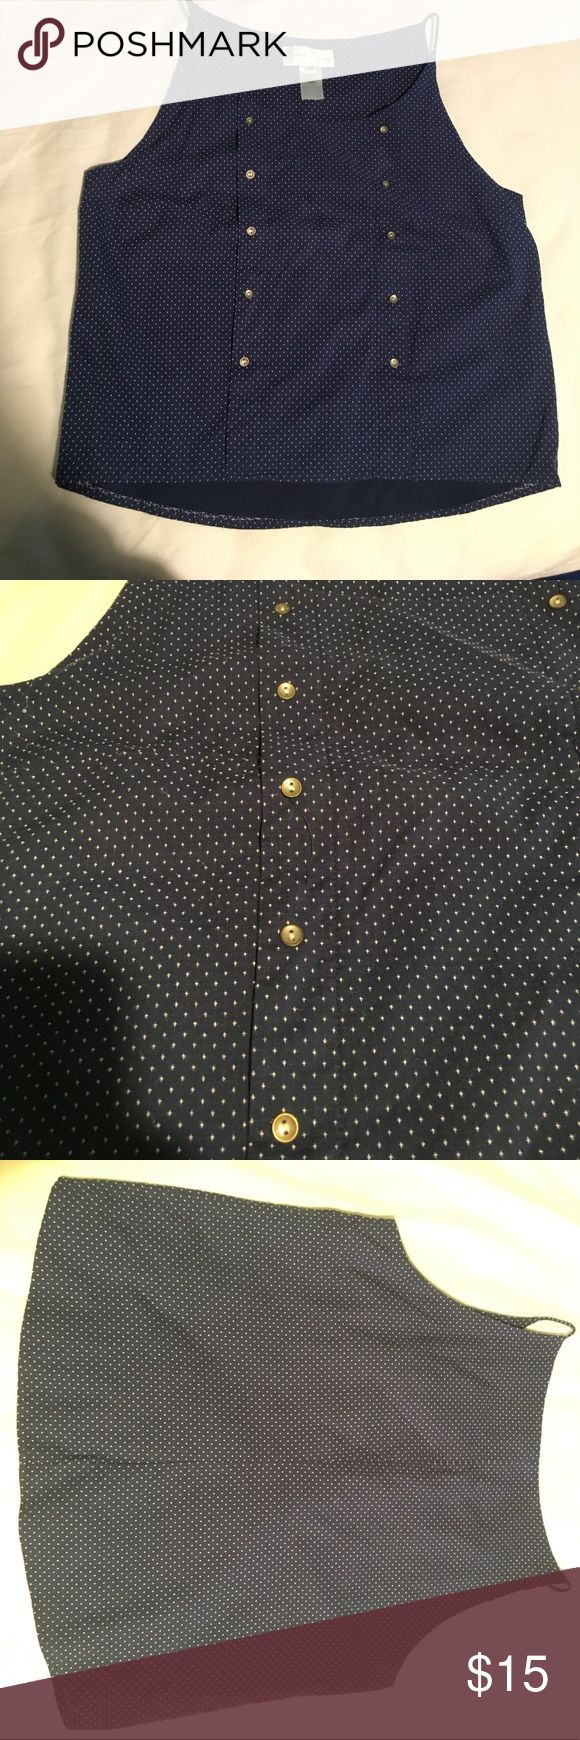 """Corey Lynn Calter cropped boxy polka dot tank M EUC strappy navy, polka dotted hi-low tank size Medium. Chest 19 across. Length 20"""" in the fron, 21.5"""" in the back. Tank is lined. Anthropologie Tops Tank Tops"""